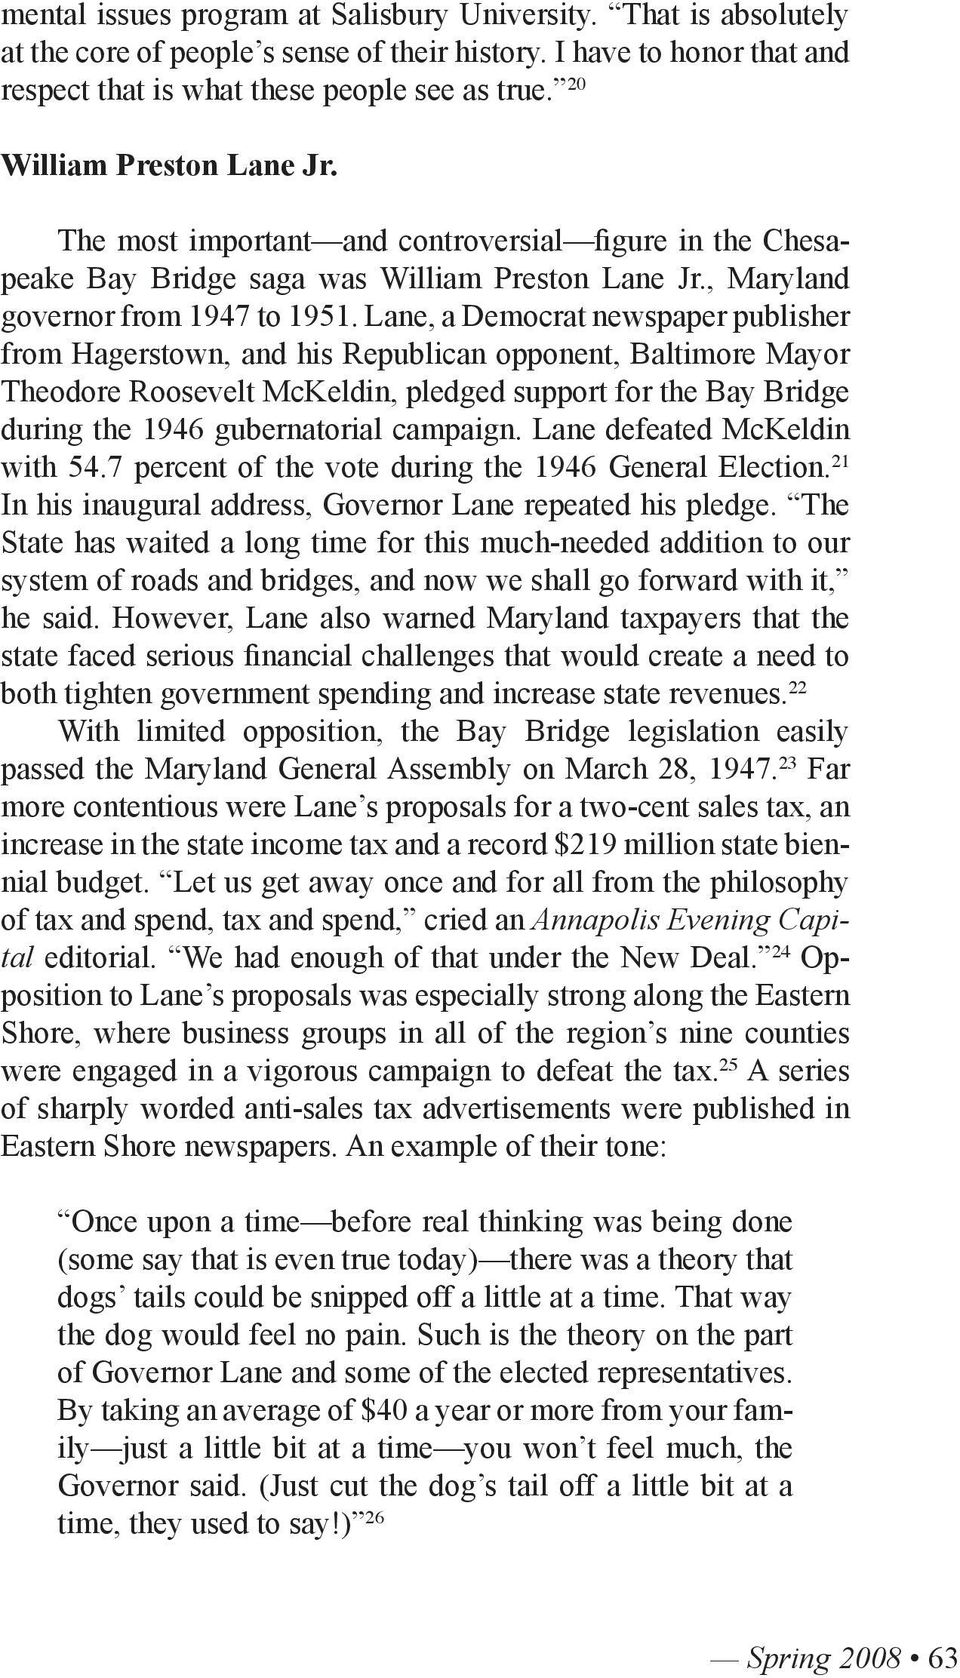 Lane, a Democrat newspaper publisher from Hagerstown, and his Republican opponent, Baltimore Mayor Theodore Roosevelt McKeldin, pledged support for the Bay Bridge during the 1946 gubernatorial